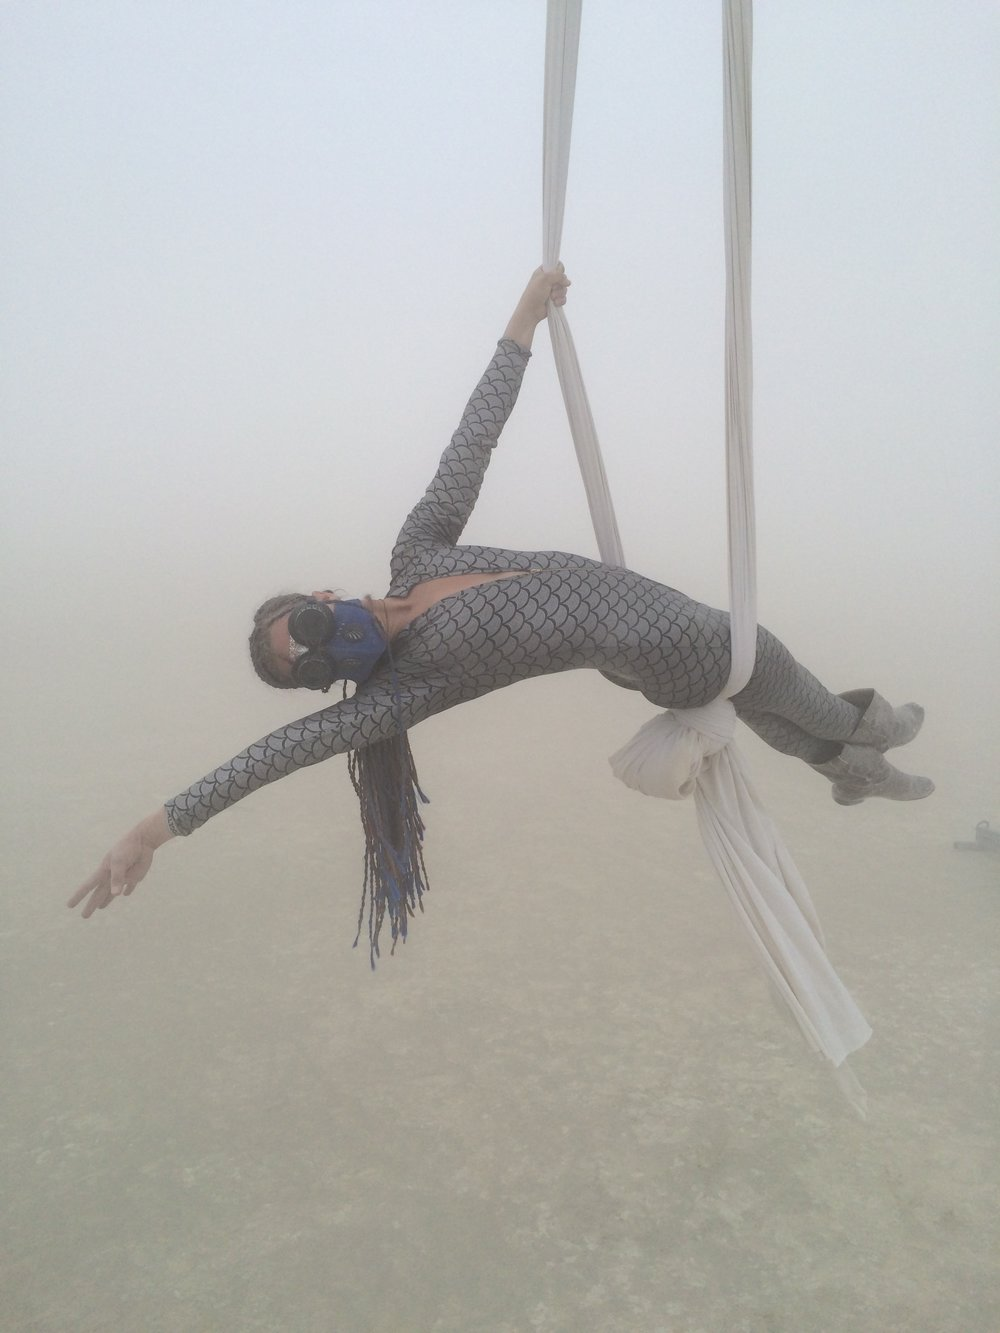 Sarah plays on the silks in the dust storm.